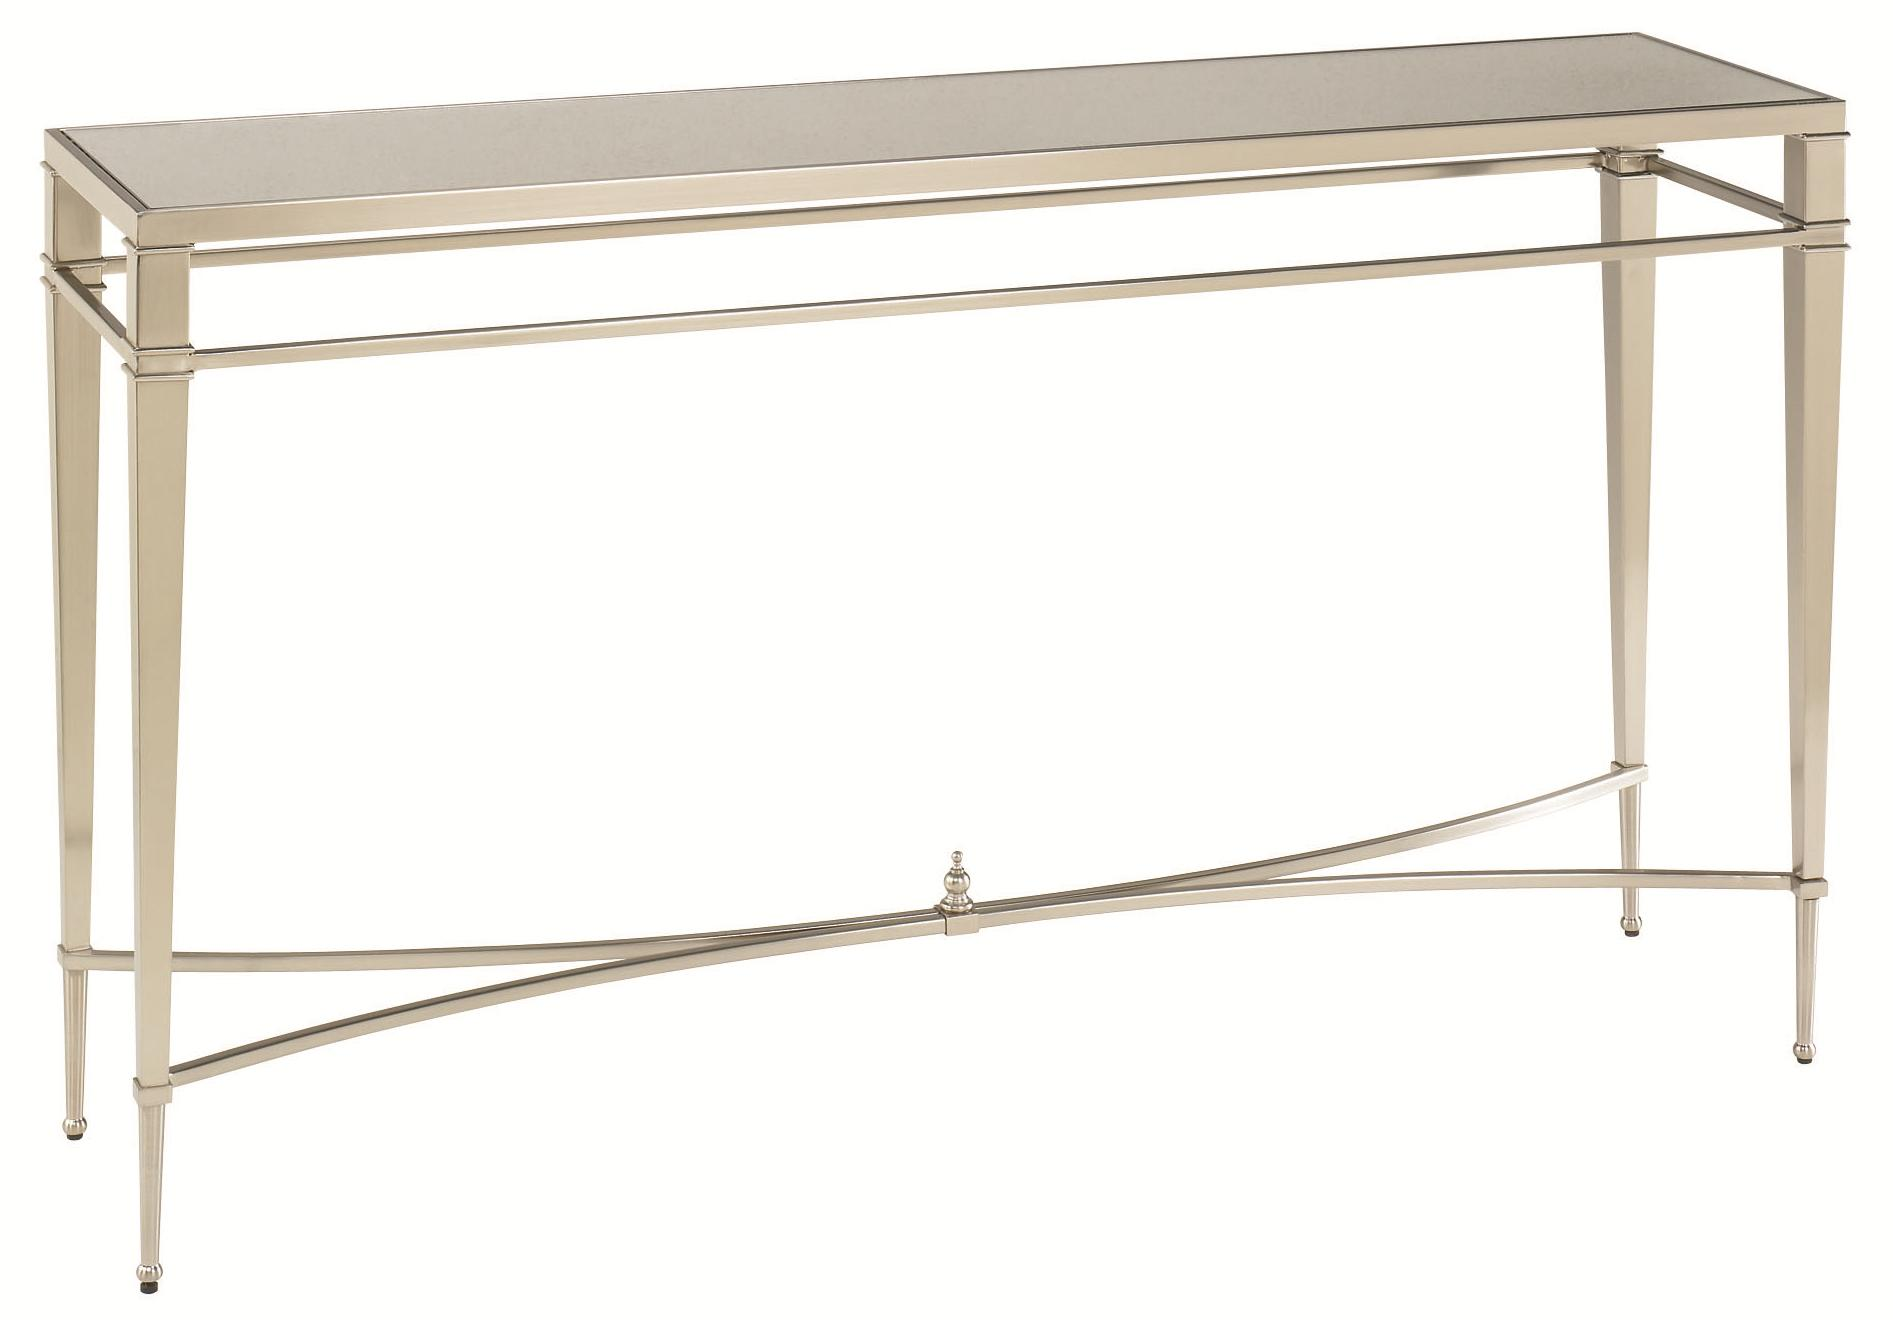 Silver Nickel Antique Finish Sofa Table by Hammary